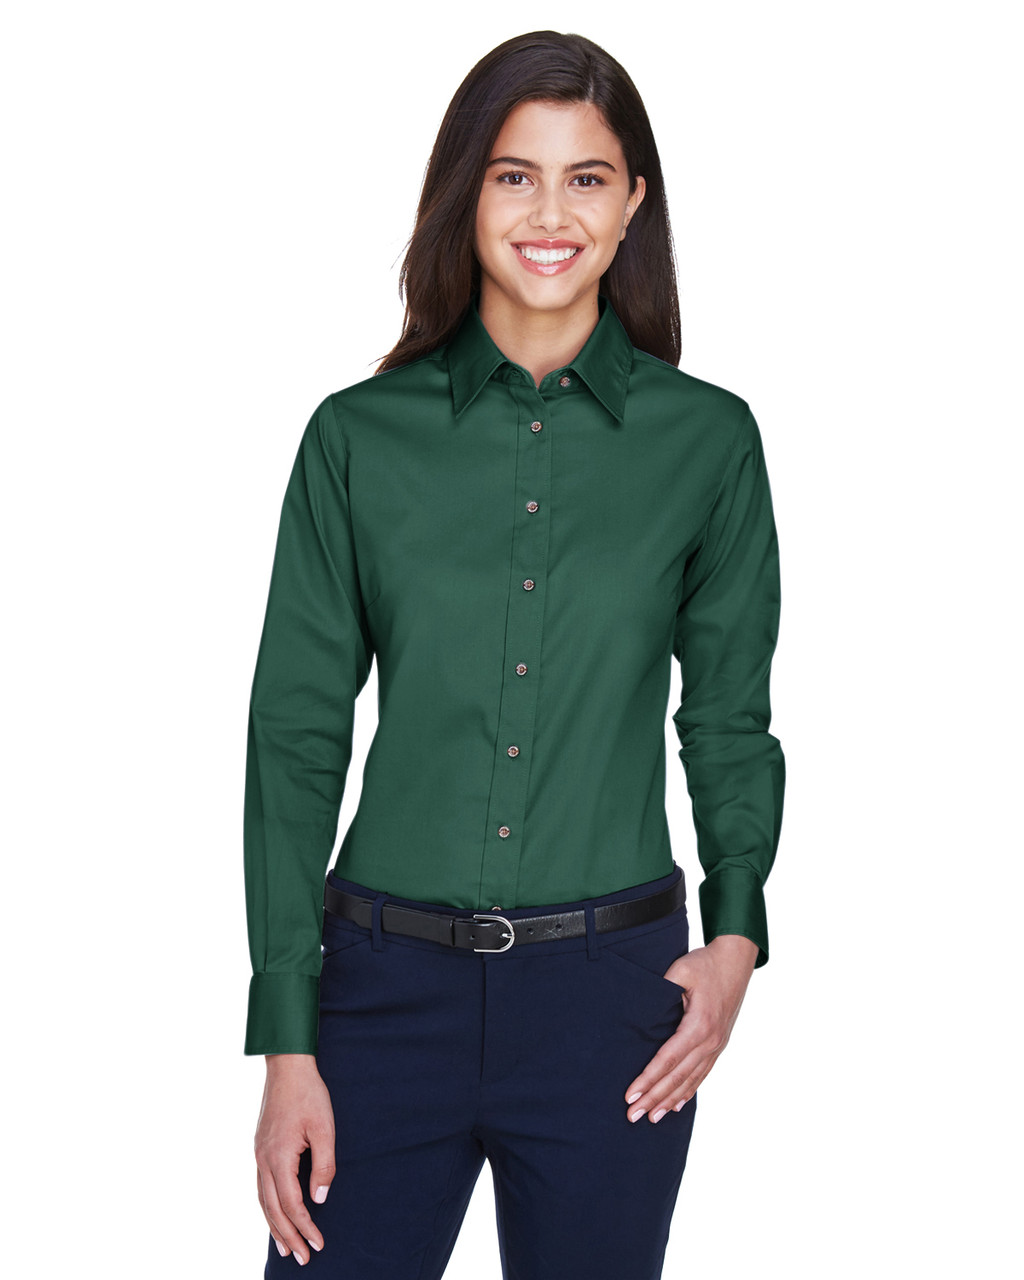 Hunter - M500W Harriton Easy Blend Long-Sleeve Twill Shirt with Stain-Release | BlankClothing.ca